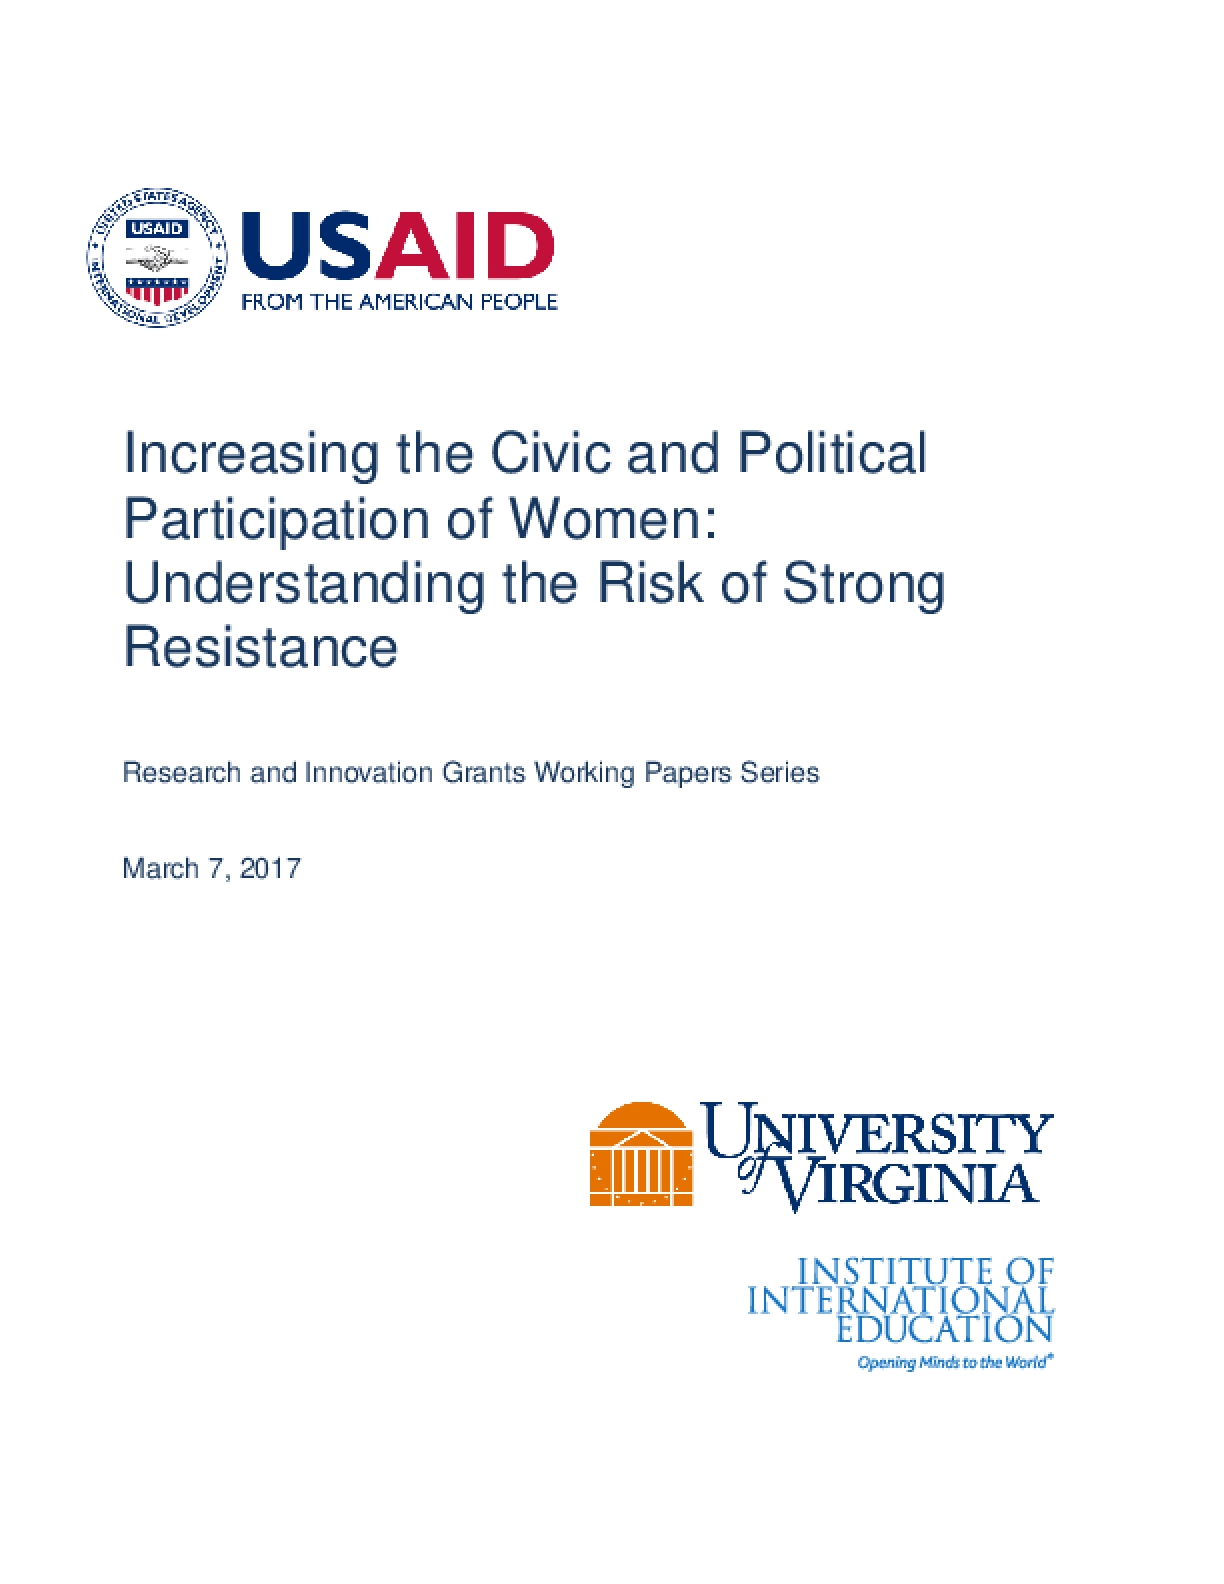 Increasing the Civic and Political Participation of Women (2017)